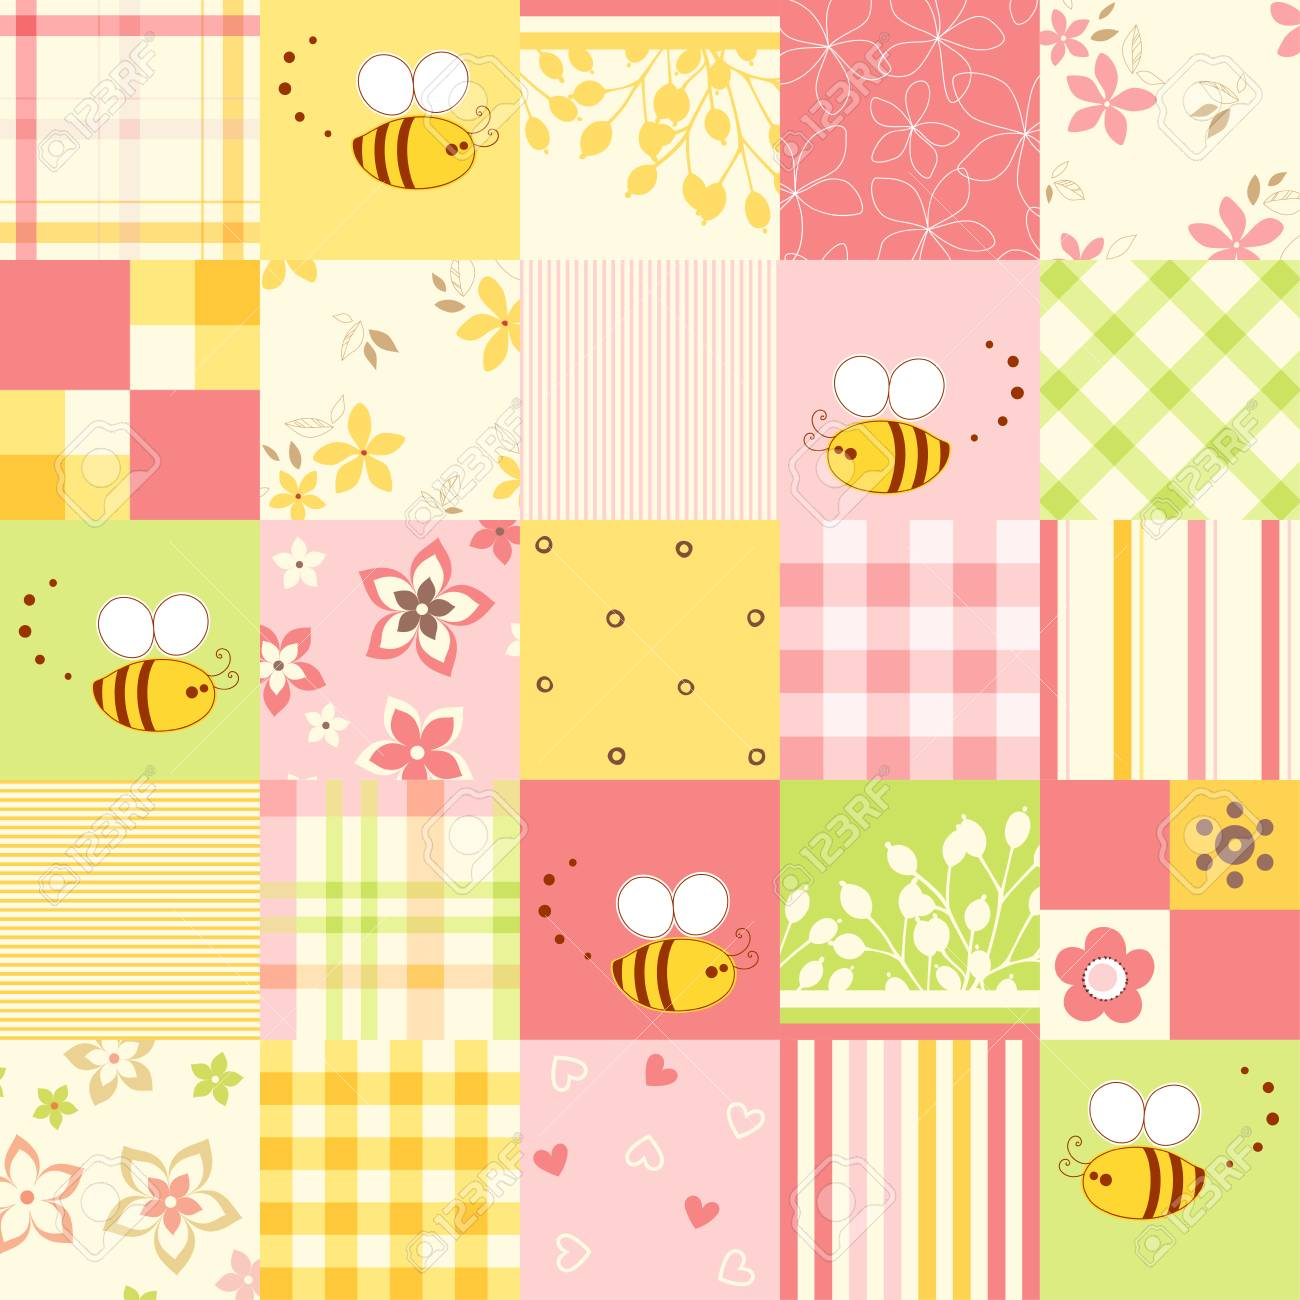 Good For Wrapping Paper And Fabric Design Baby Shower